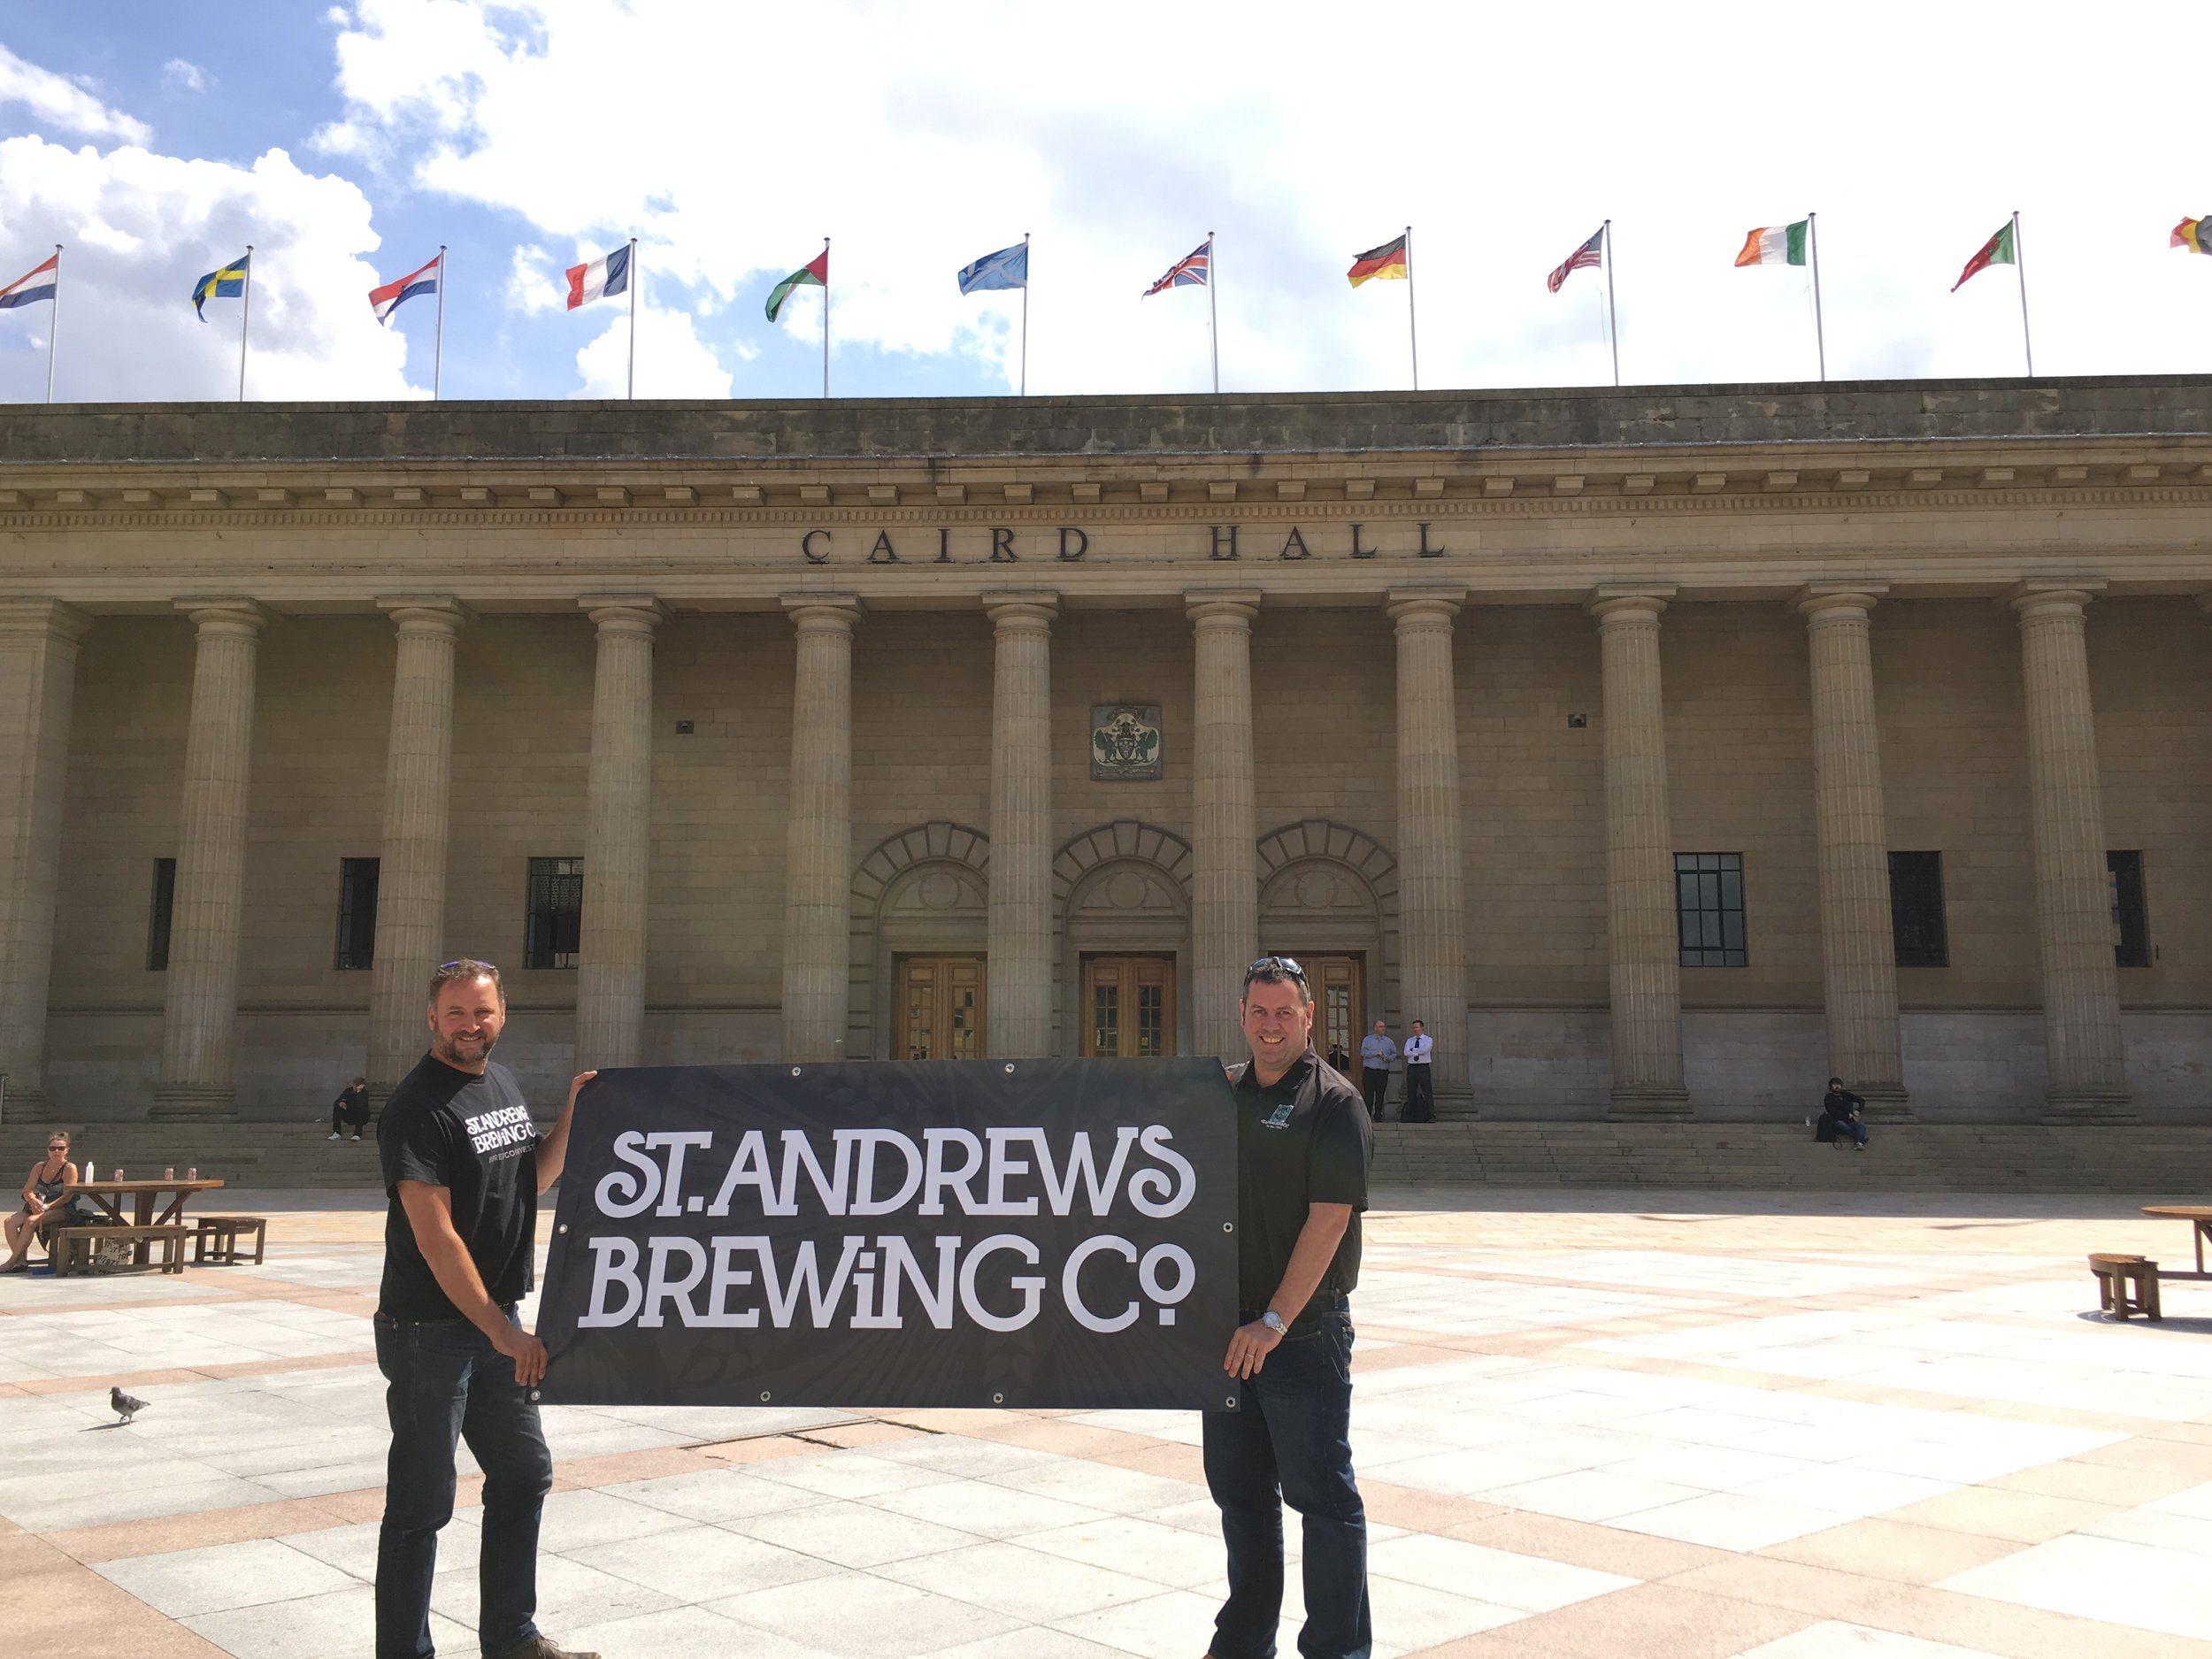 St Andrews Brewing Co Tim Butler and Phil Mackey outside the Caird Hall.JPG